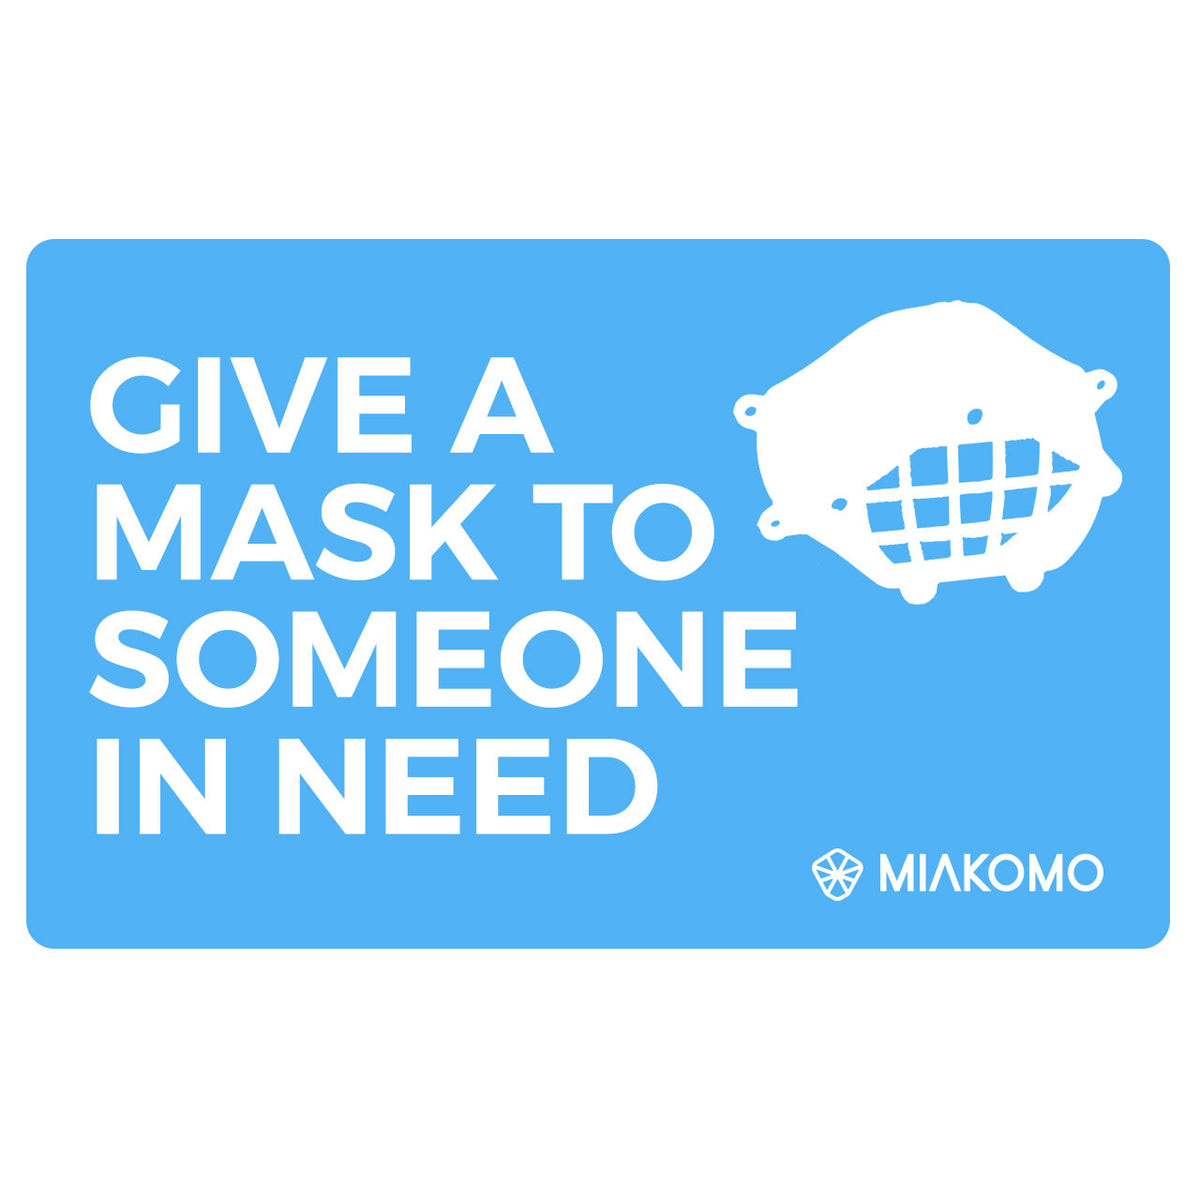 Give A Mask To Someone In Need - MIAKOMO